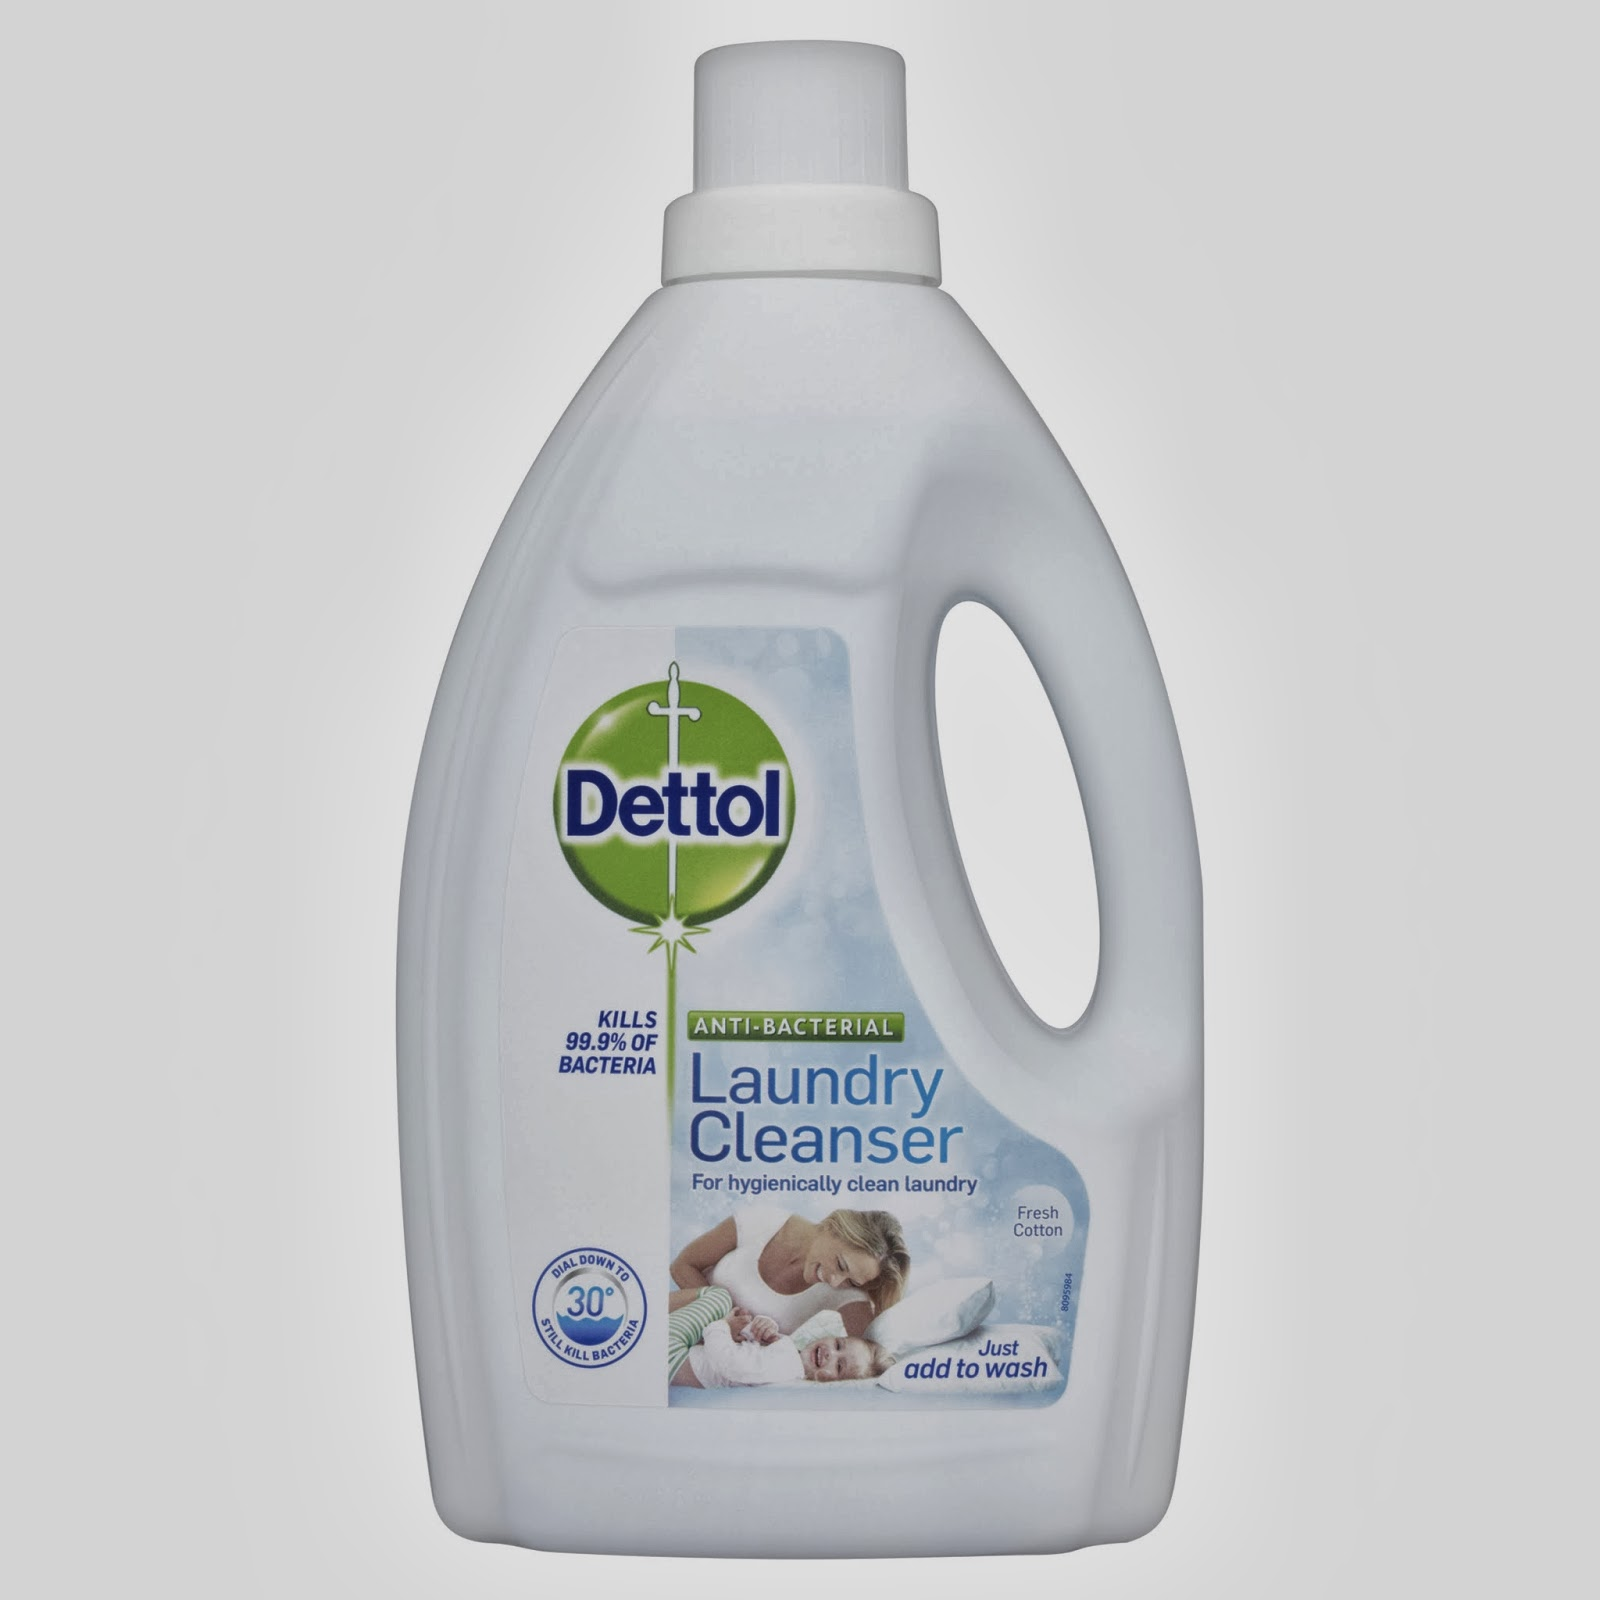 Dettol S Anti Bacterial Laundry Cleanser My Mummy S World